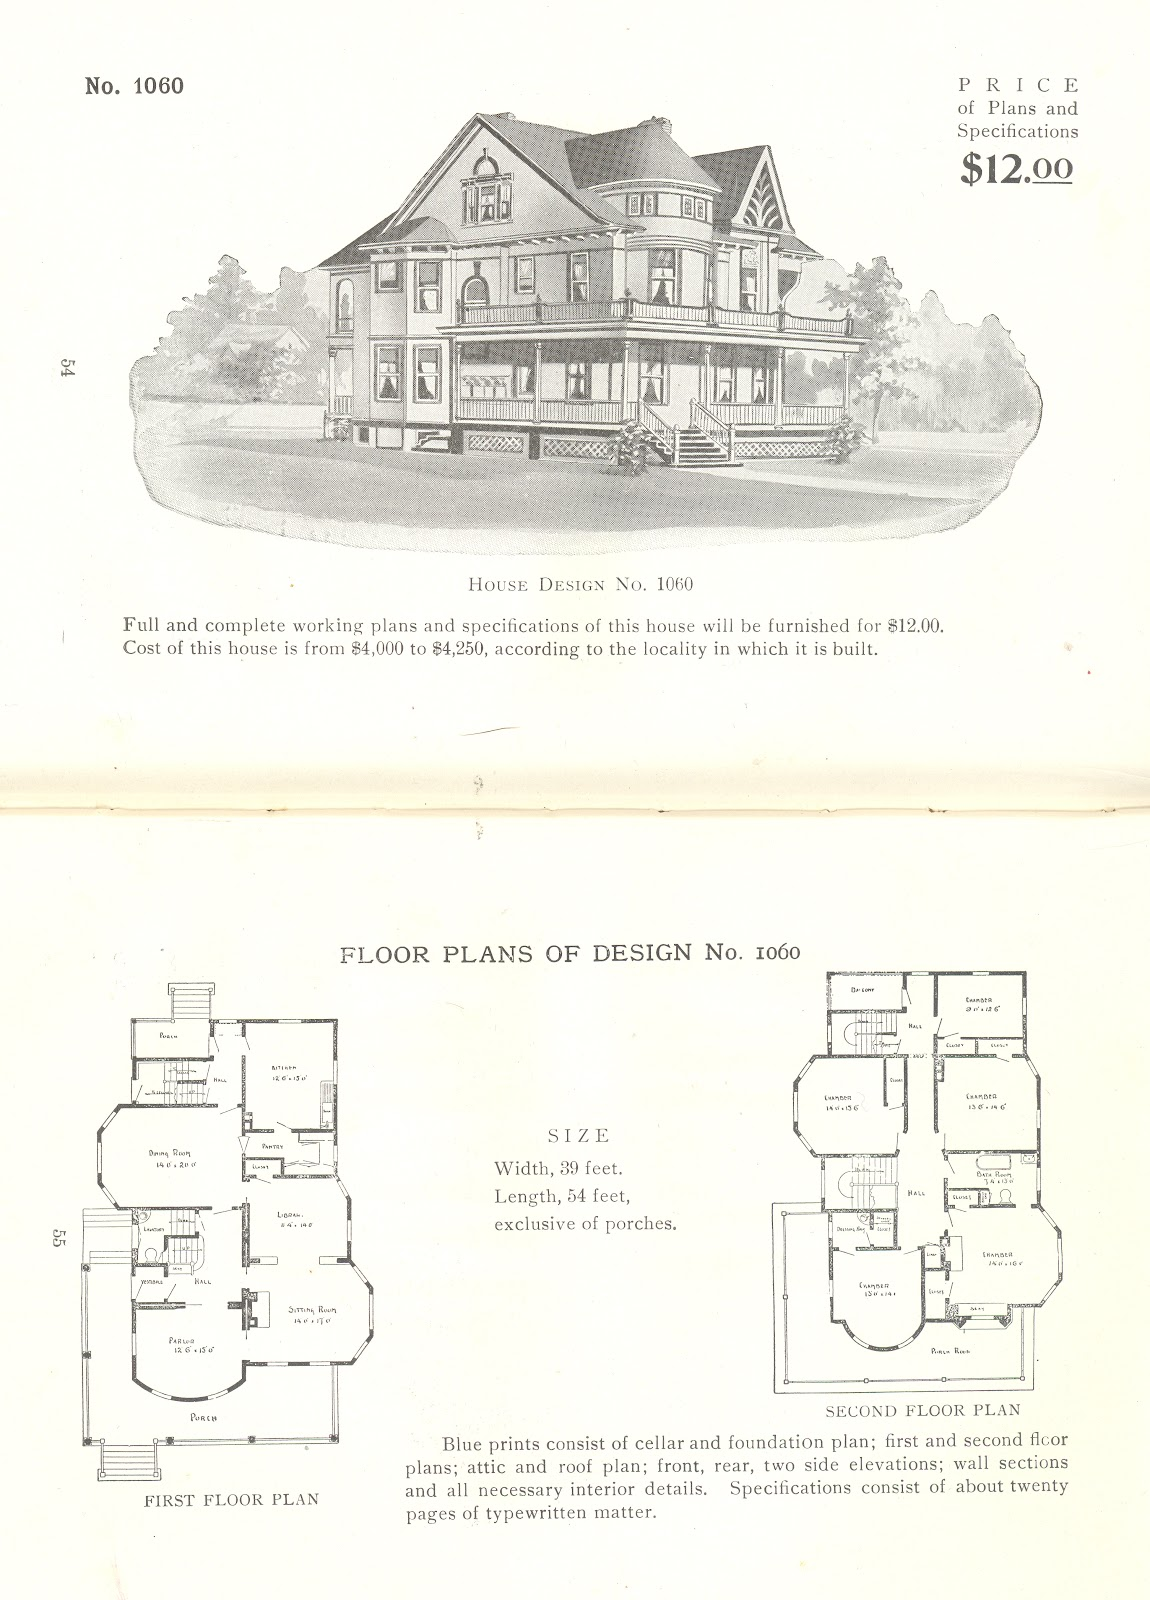 Old photos of architecture: 1908 Radford Architectural ... on birmingham house plans, palmyra house plans, henderson house plans, antique house plans, alamosa house plans, naples house plans, little rock house plans, burke house plans, wilmington house plans, english french country house plans, french country estate house plans, united states house plans, new old house plans, san marcos house plans, chesapeake house plans, hanover house plans, alexandria house plans, victorian house plans, springfield house plans, small house plans,